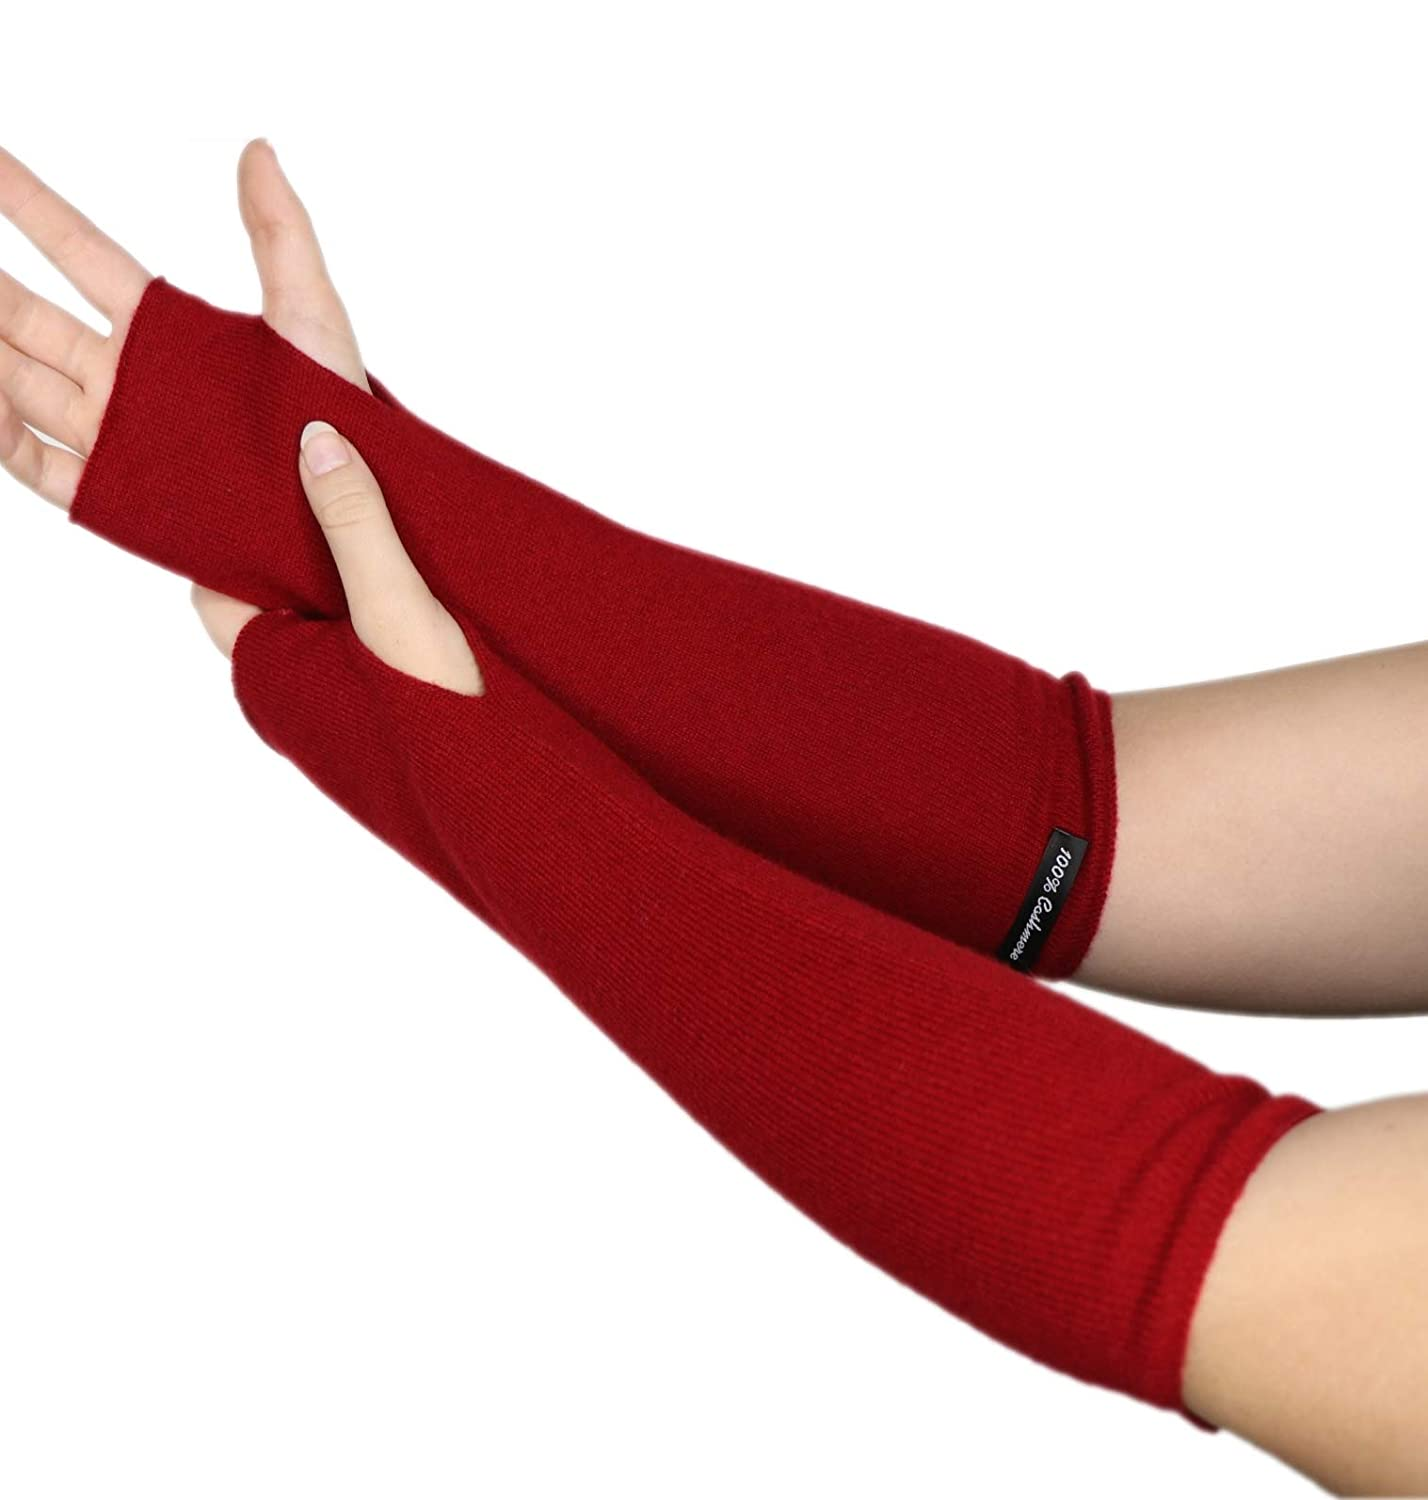 Prettystern - Arm warmers long cuffs 100% cashmere fingerless pulse warmers soft hand cuffs - color choice